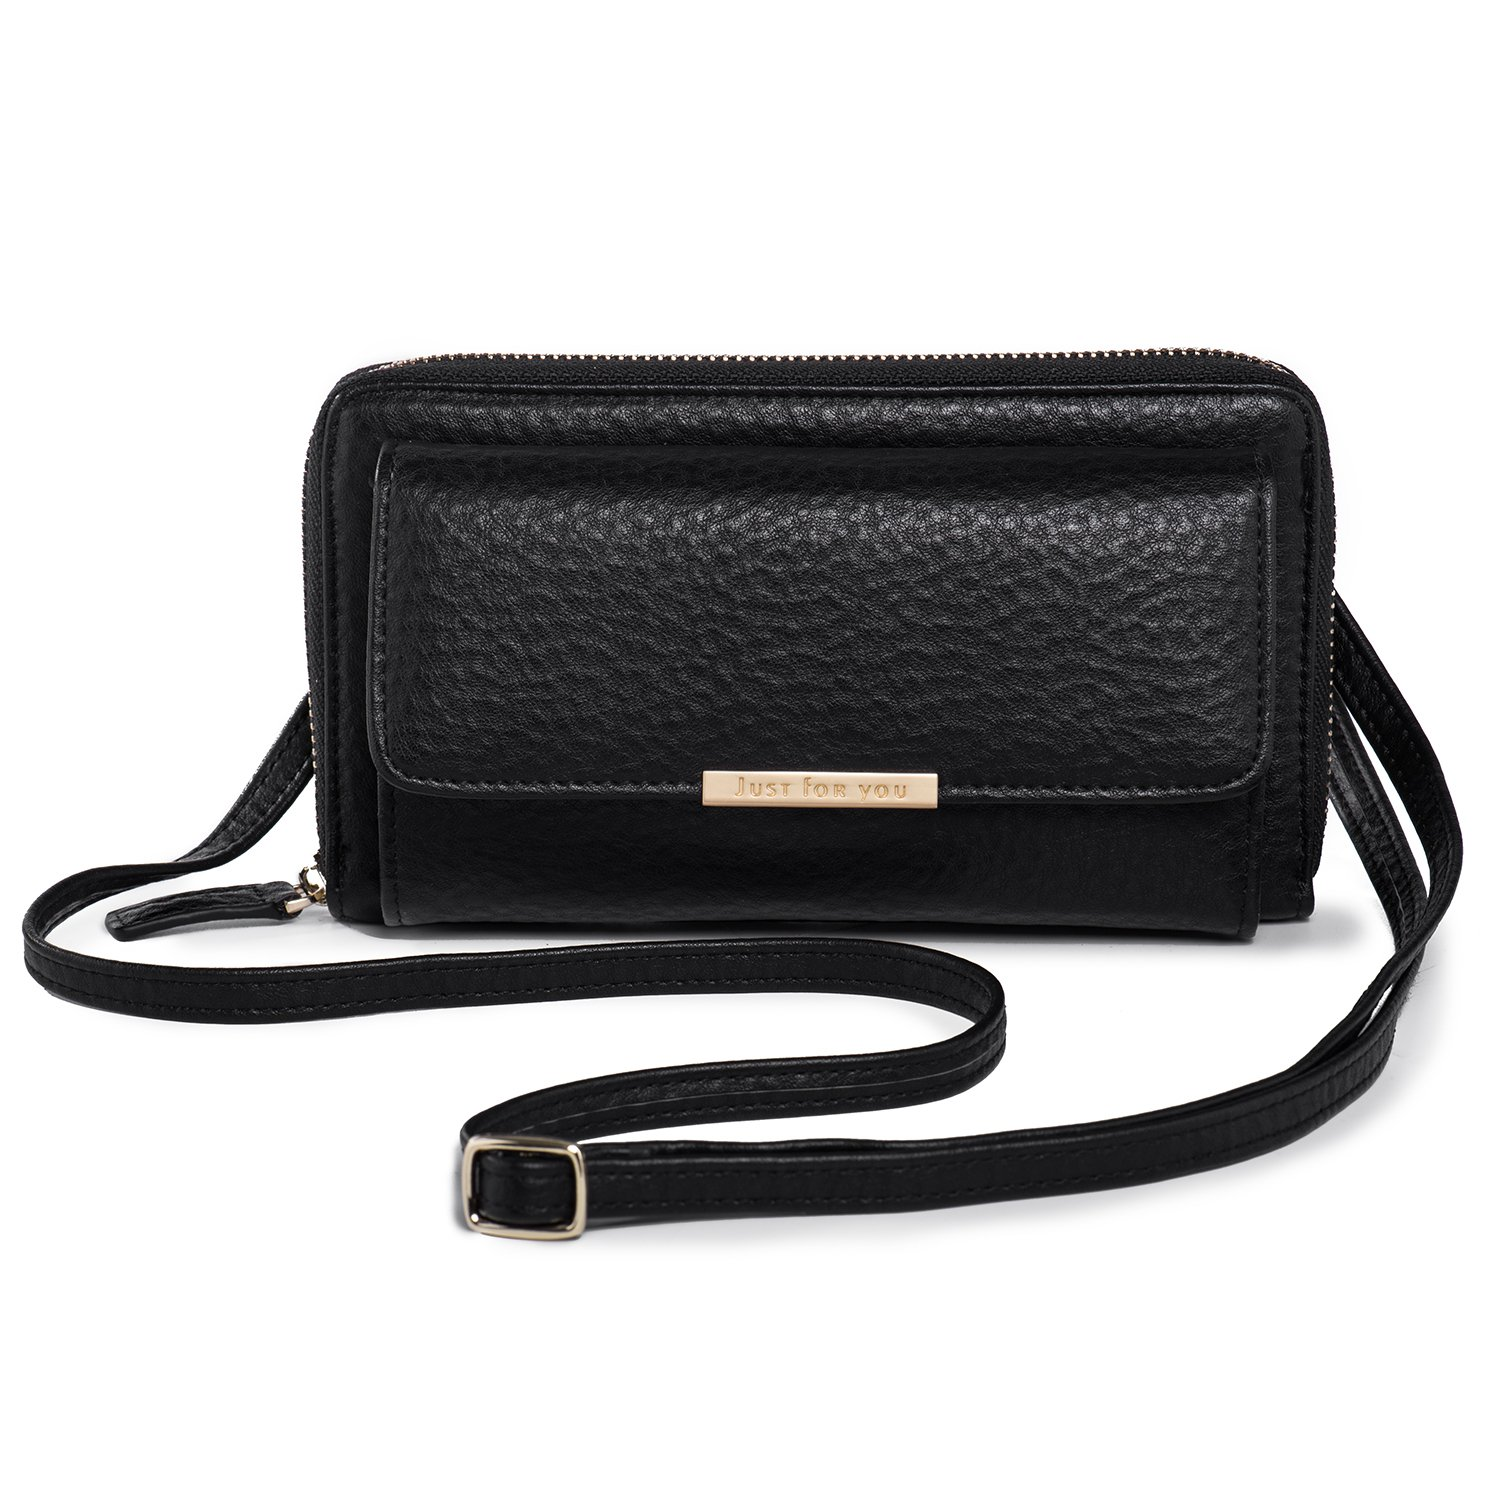 Crossbody Wallet Cellphone Purse for Women Clutch Handbag PU Leather Cross Body Bag with Flap Multi Compartment for Cards Cash Smartphone Black + Katloo Nail Clipper